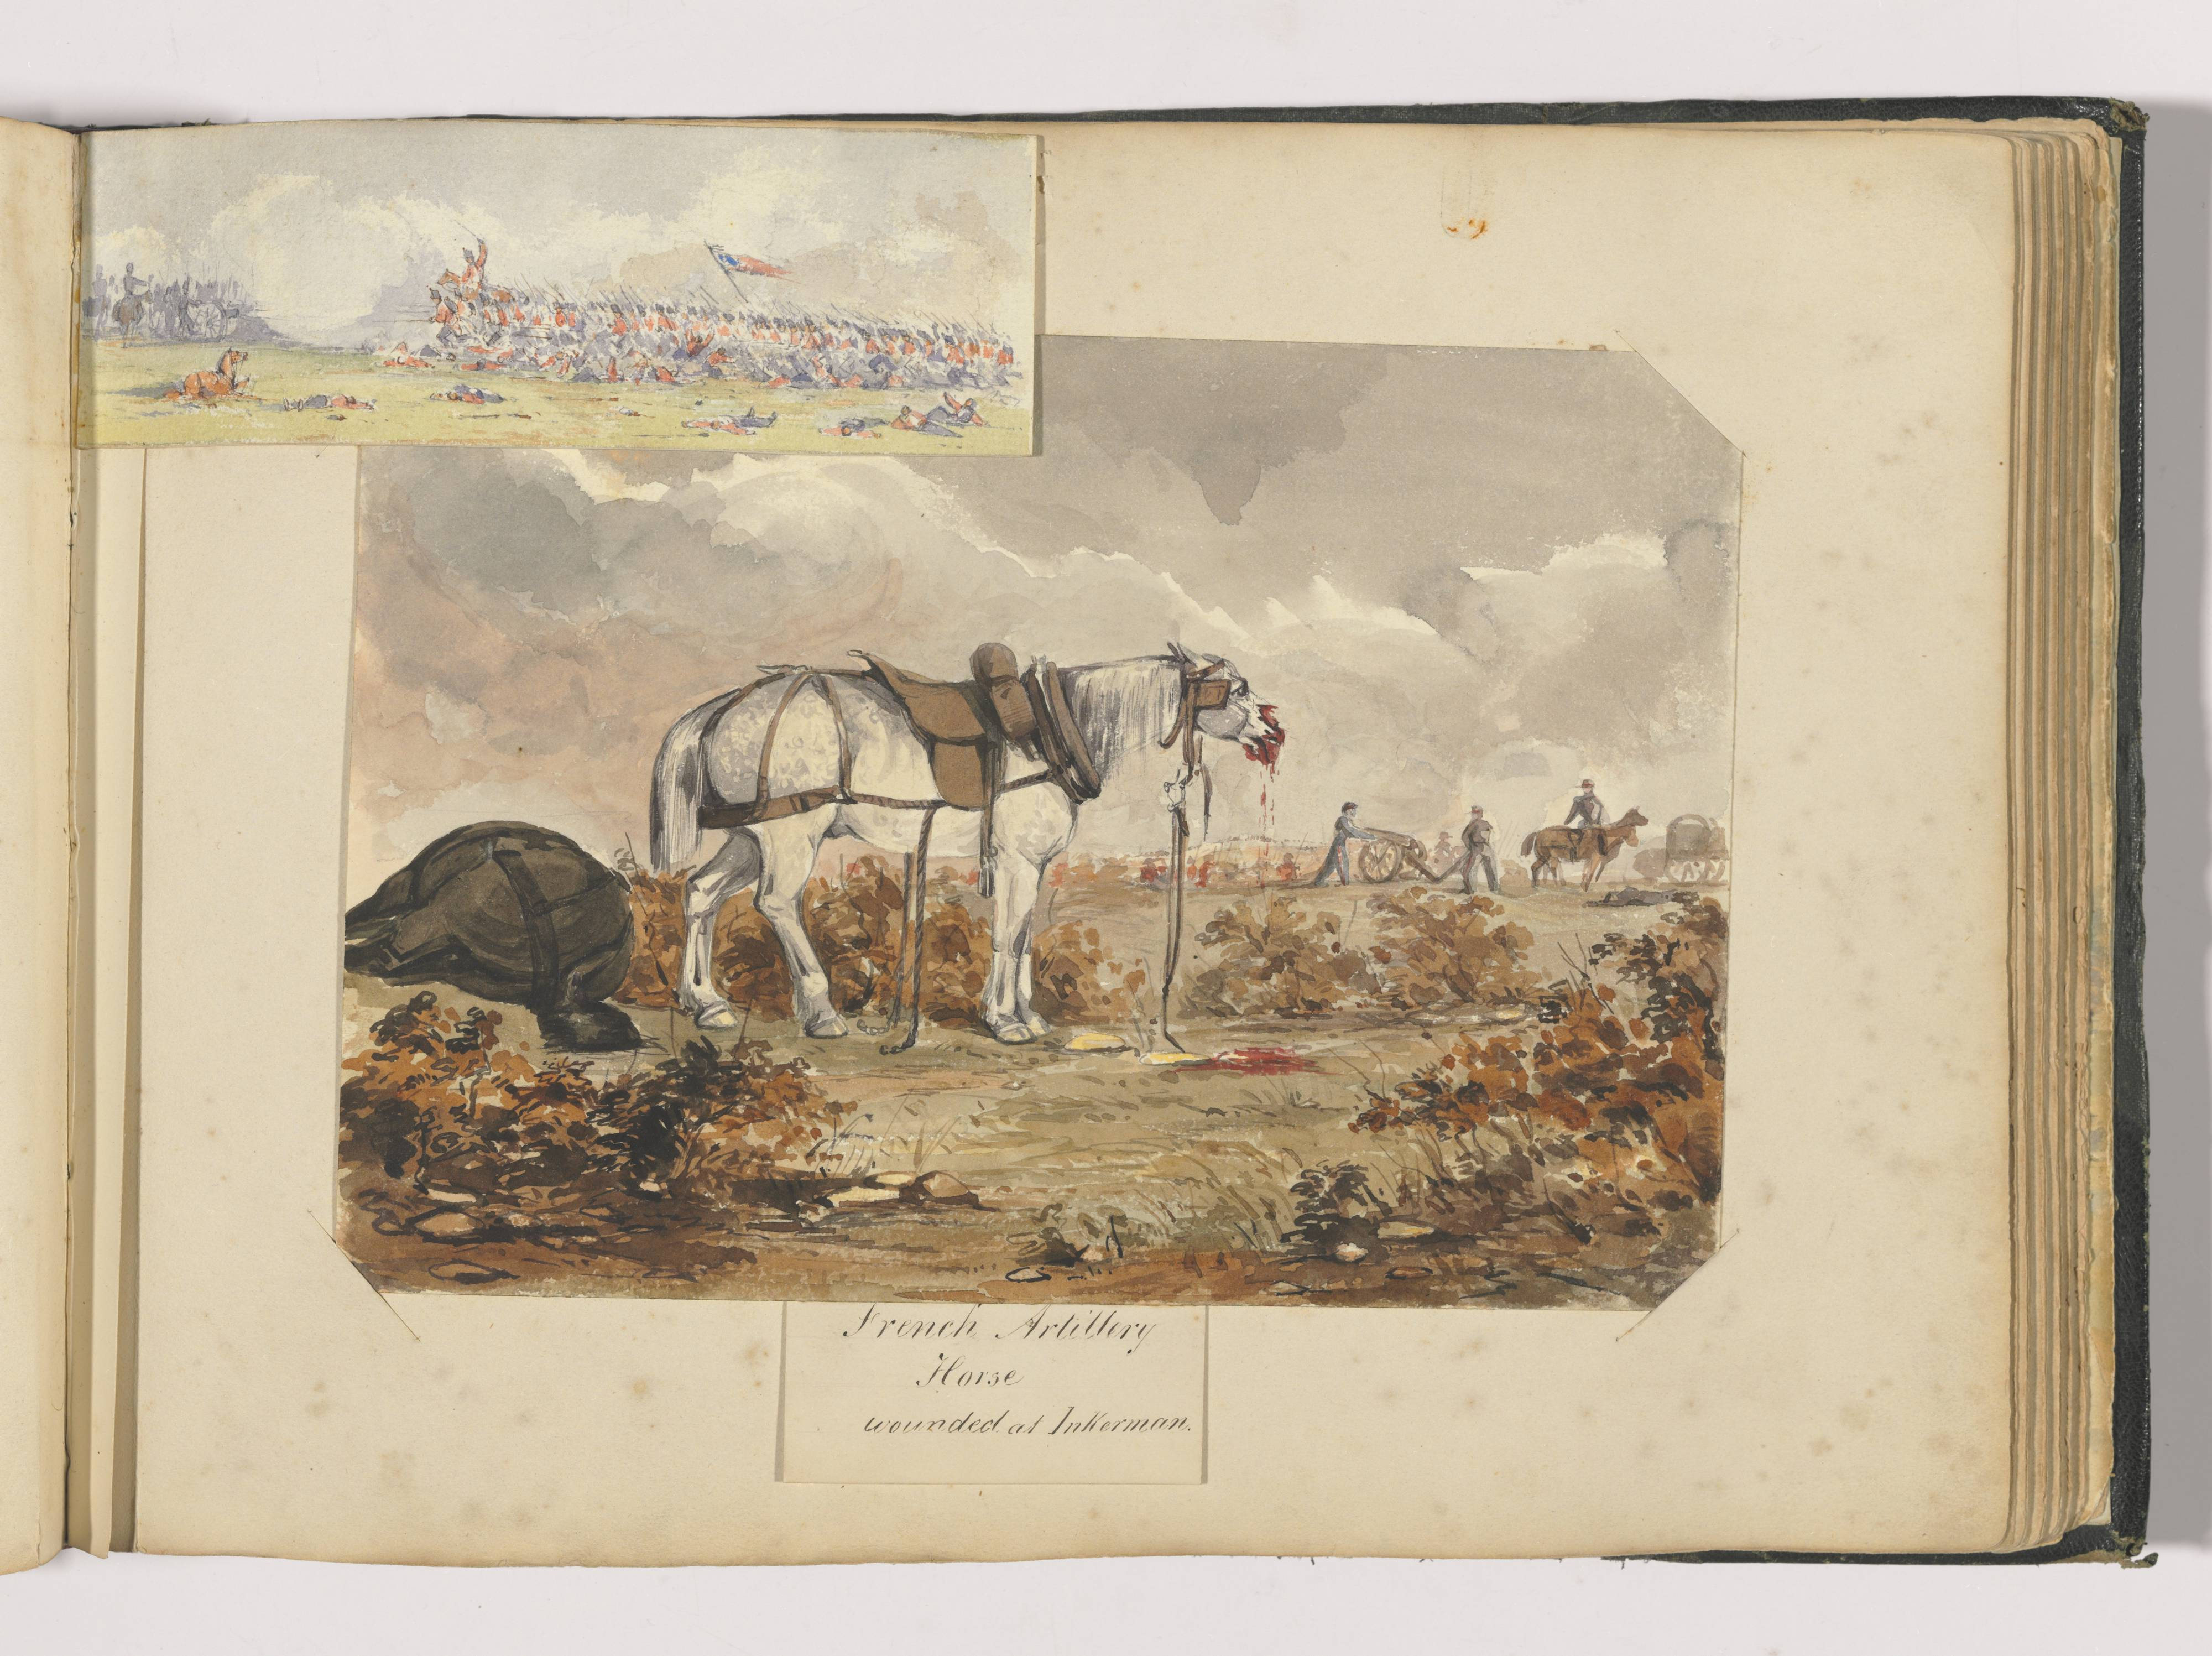 Watercolour painting. A grey horse stands next to a fallen bay (brown) horse. The grey has a bloodied and broken muzzle. Soldiers and a cannon are visible in the distance. In the top left corner is a separate battle scene showing troops advancing towards each other with fallen men and horses in front.